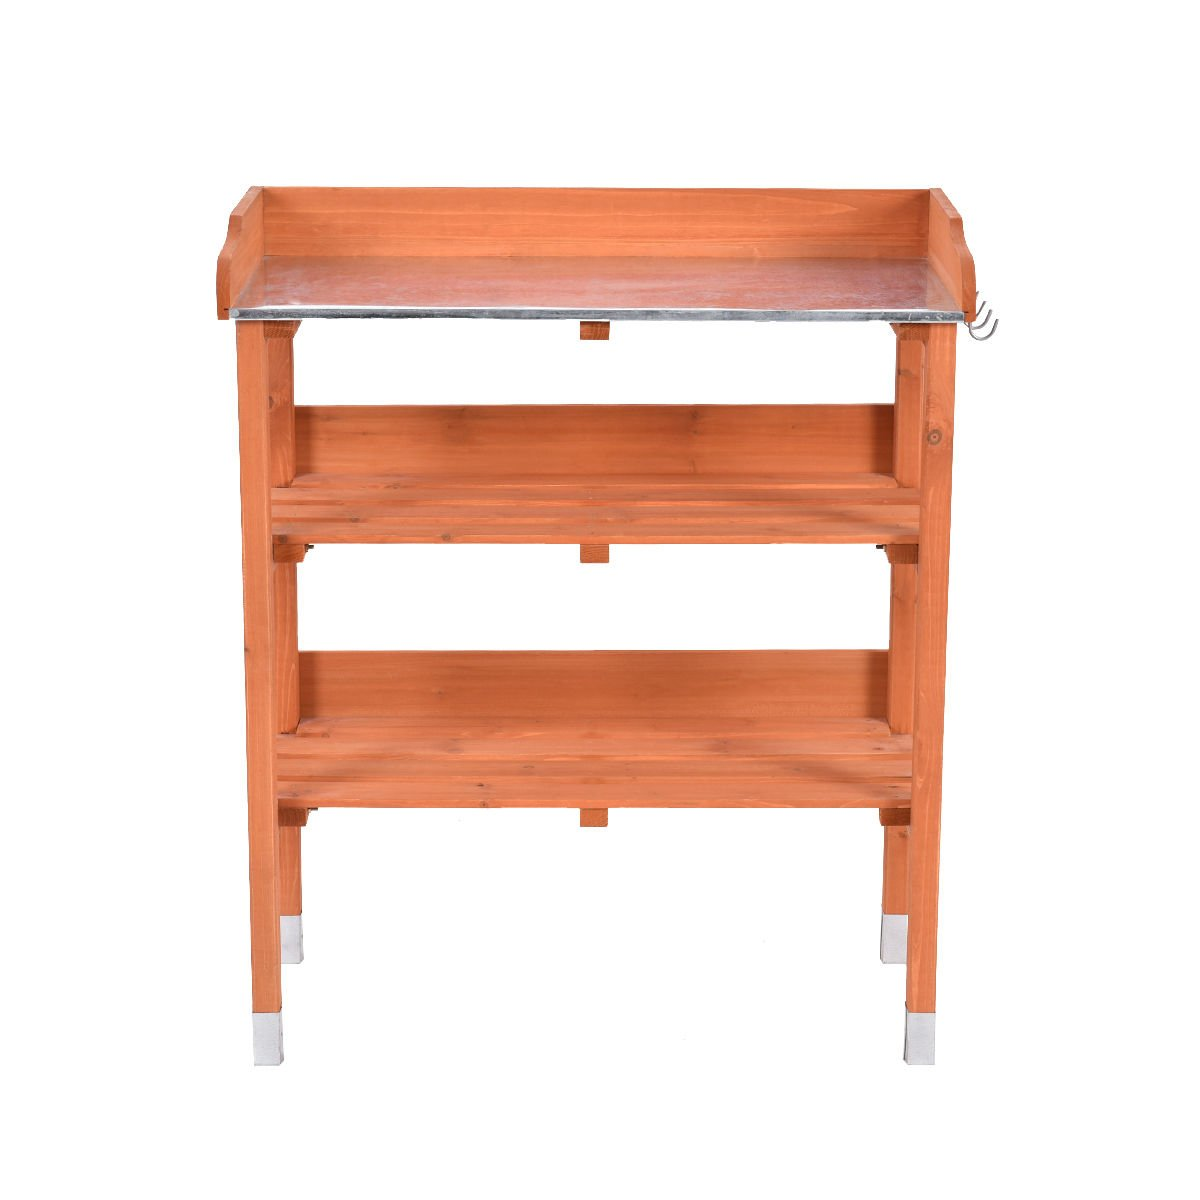 Heaven Tvcz Potting Bench Work Station Table Tool Storage Station Patio Shelf Garden Work Wooden Hook Outdoor